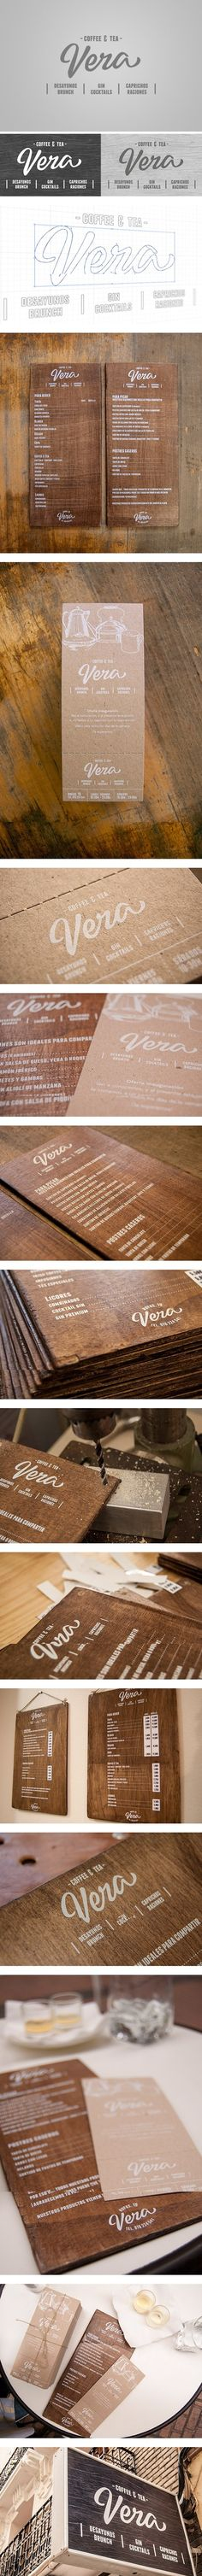 restaurants inspiration / branding | Vera brand & menu design | restaurant menu